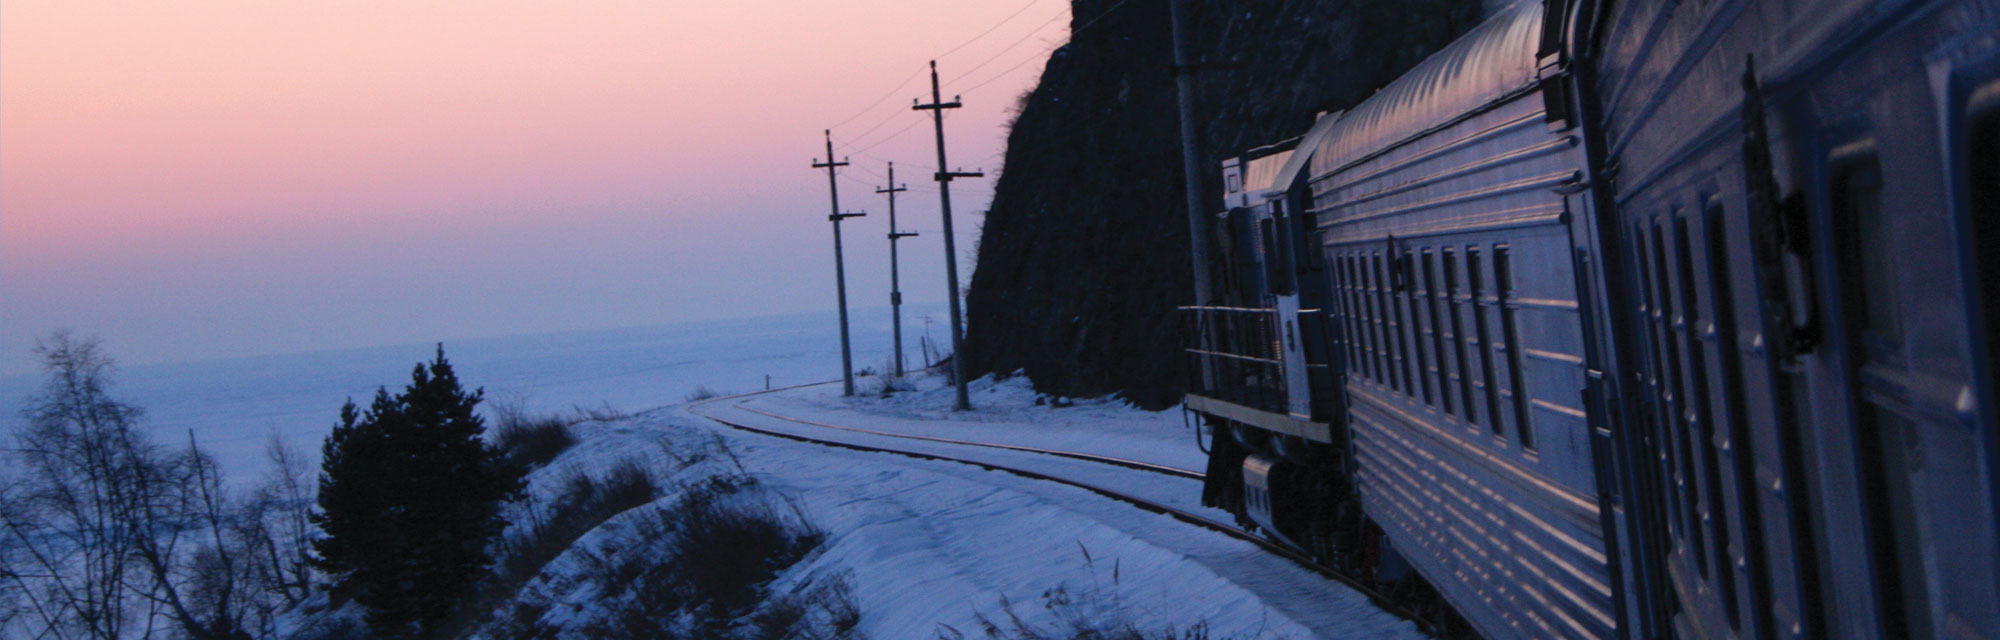 Trans siberian express winter wonderland moscow to for Trans siberian railway cabins